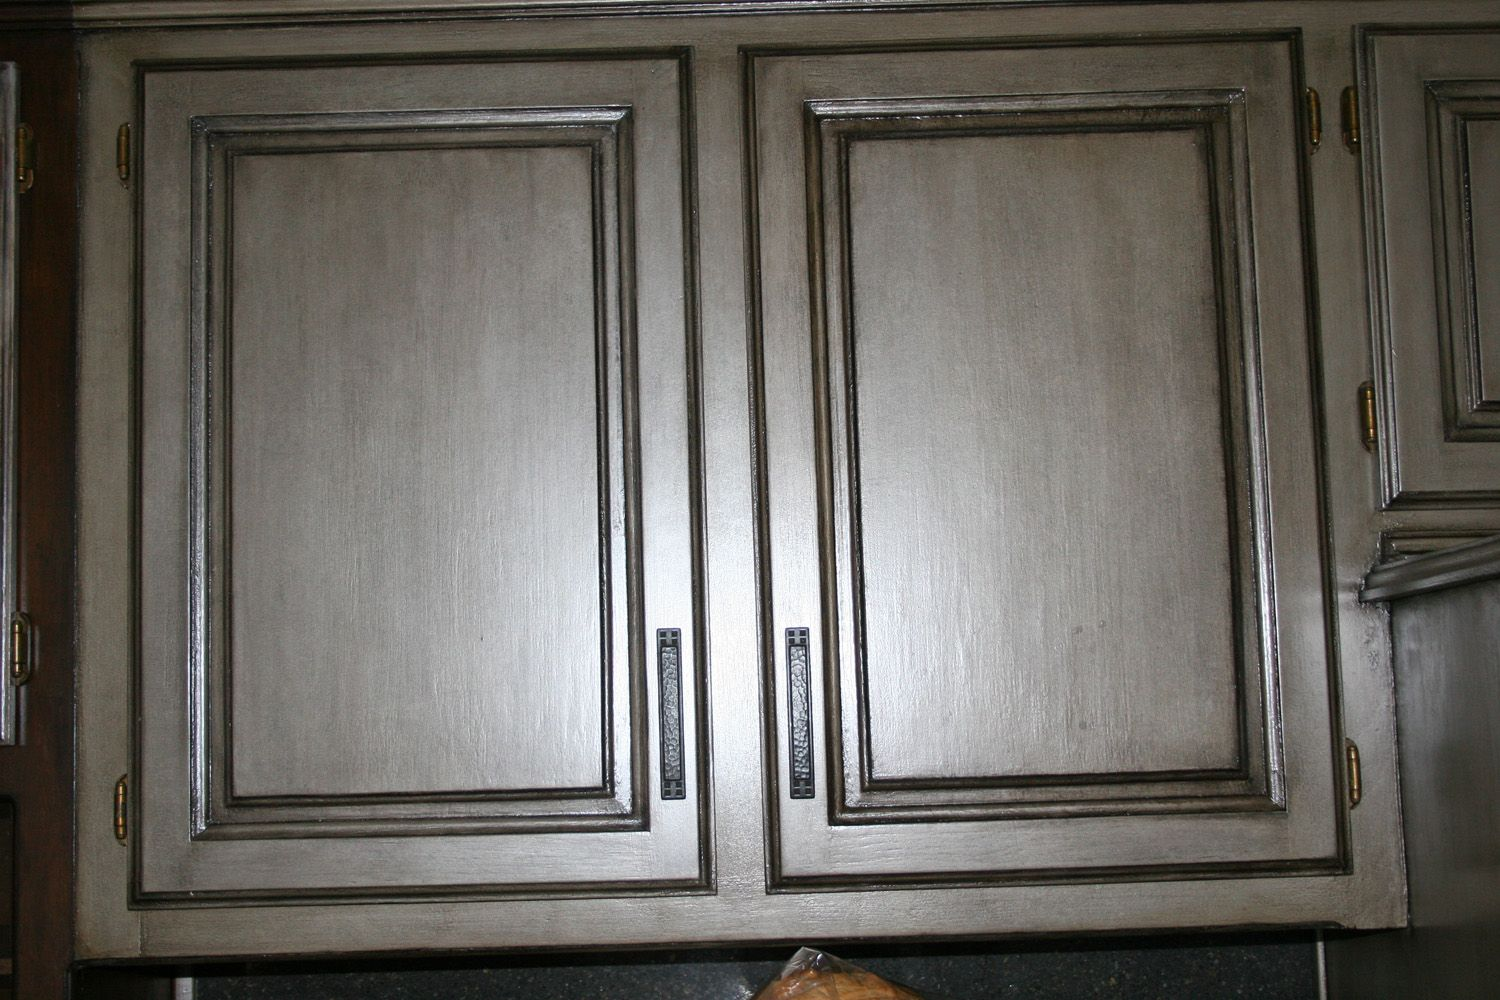 GRAY GLAZED Painted Kitchen Cabinets This Finish Is Overglazed - Gray glazed cabinets